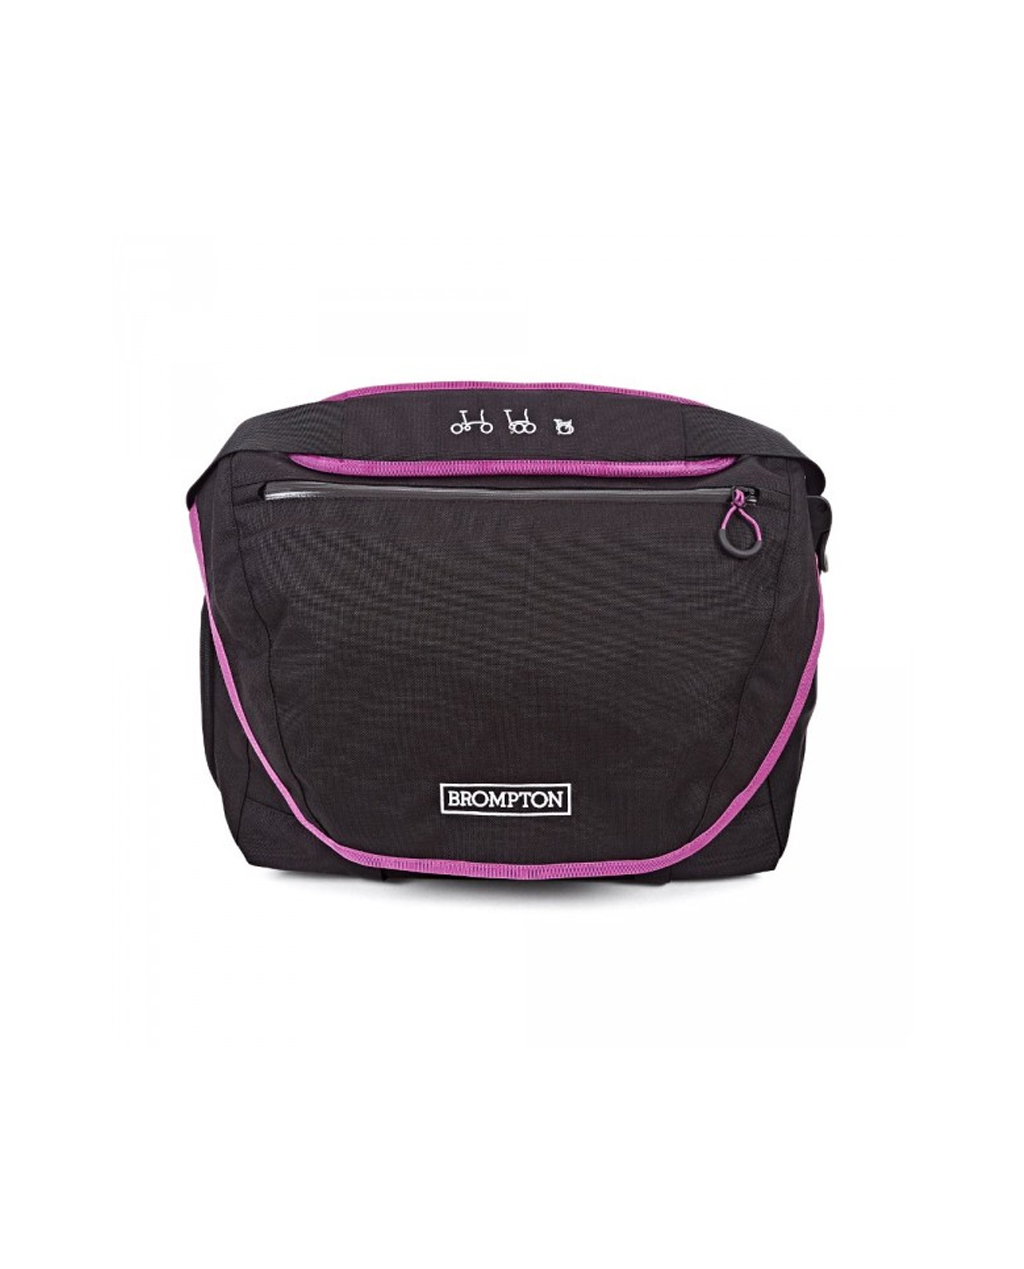 Q-Parts - C Bag Black/Berry Crush